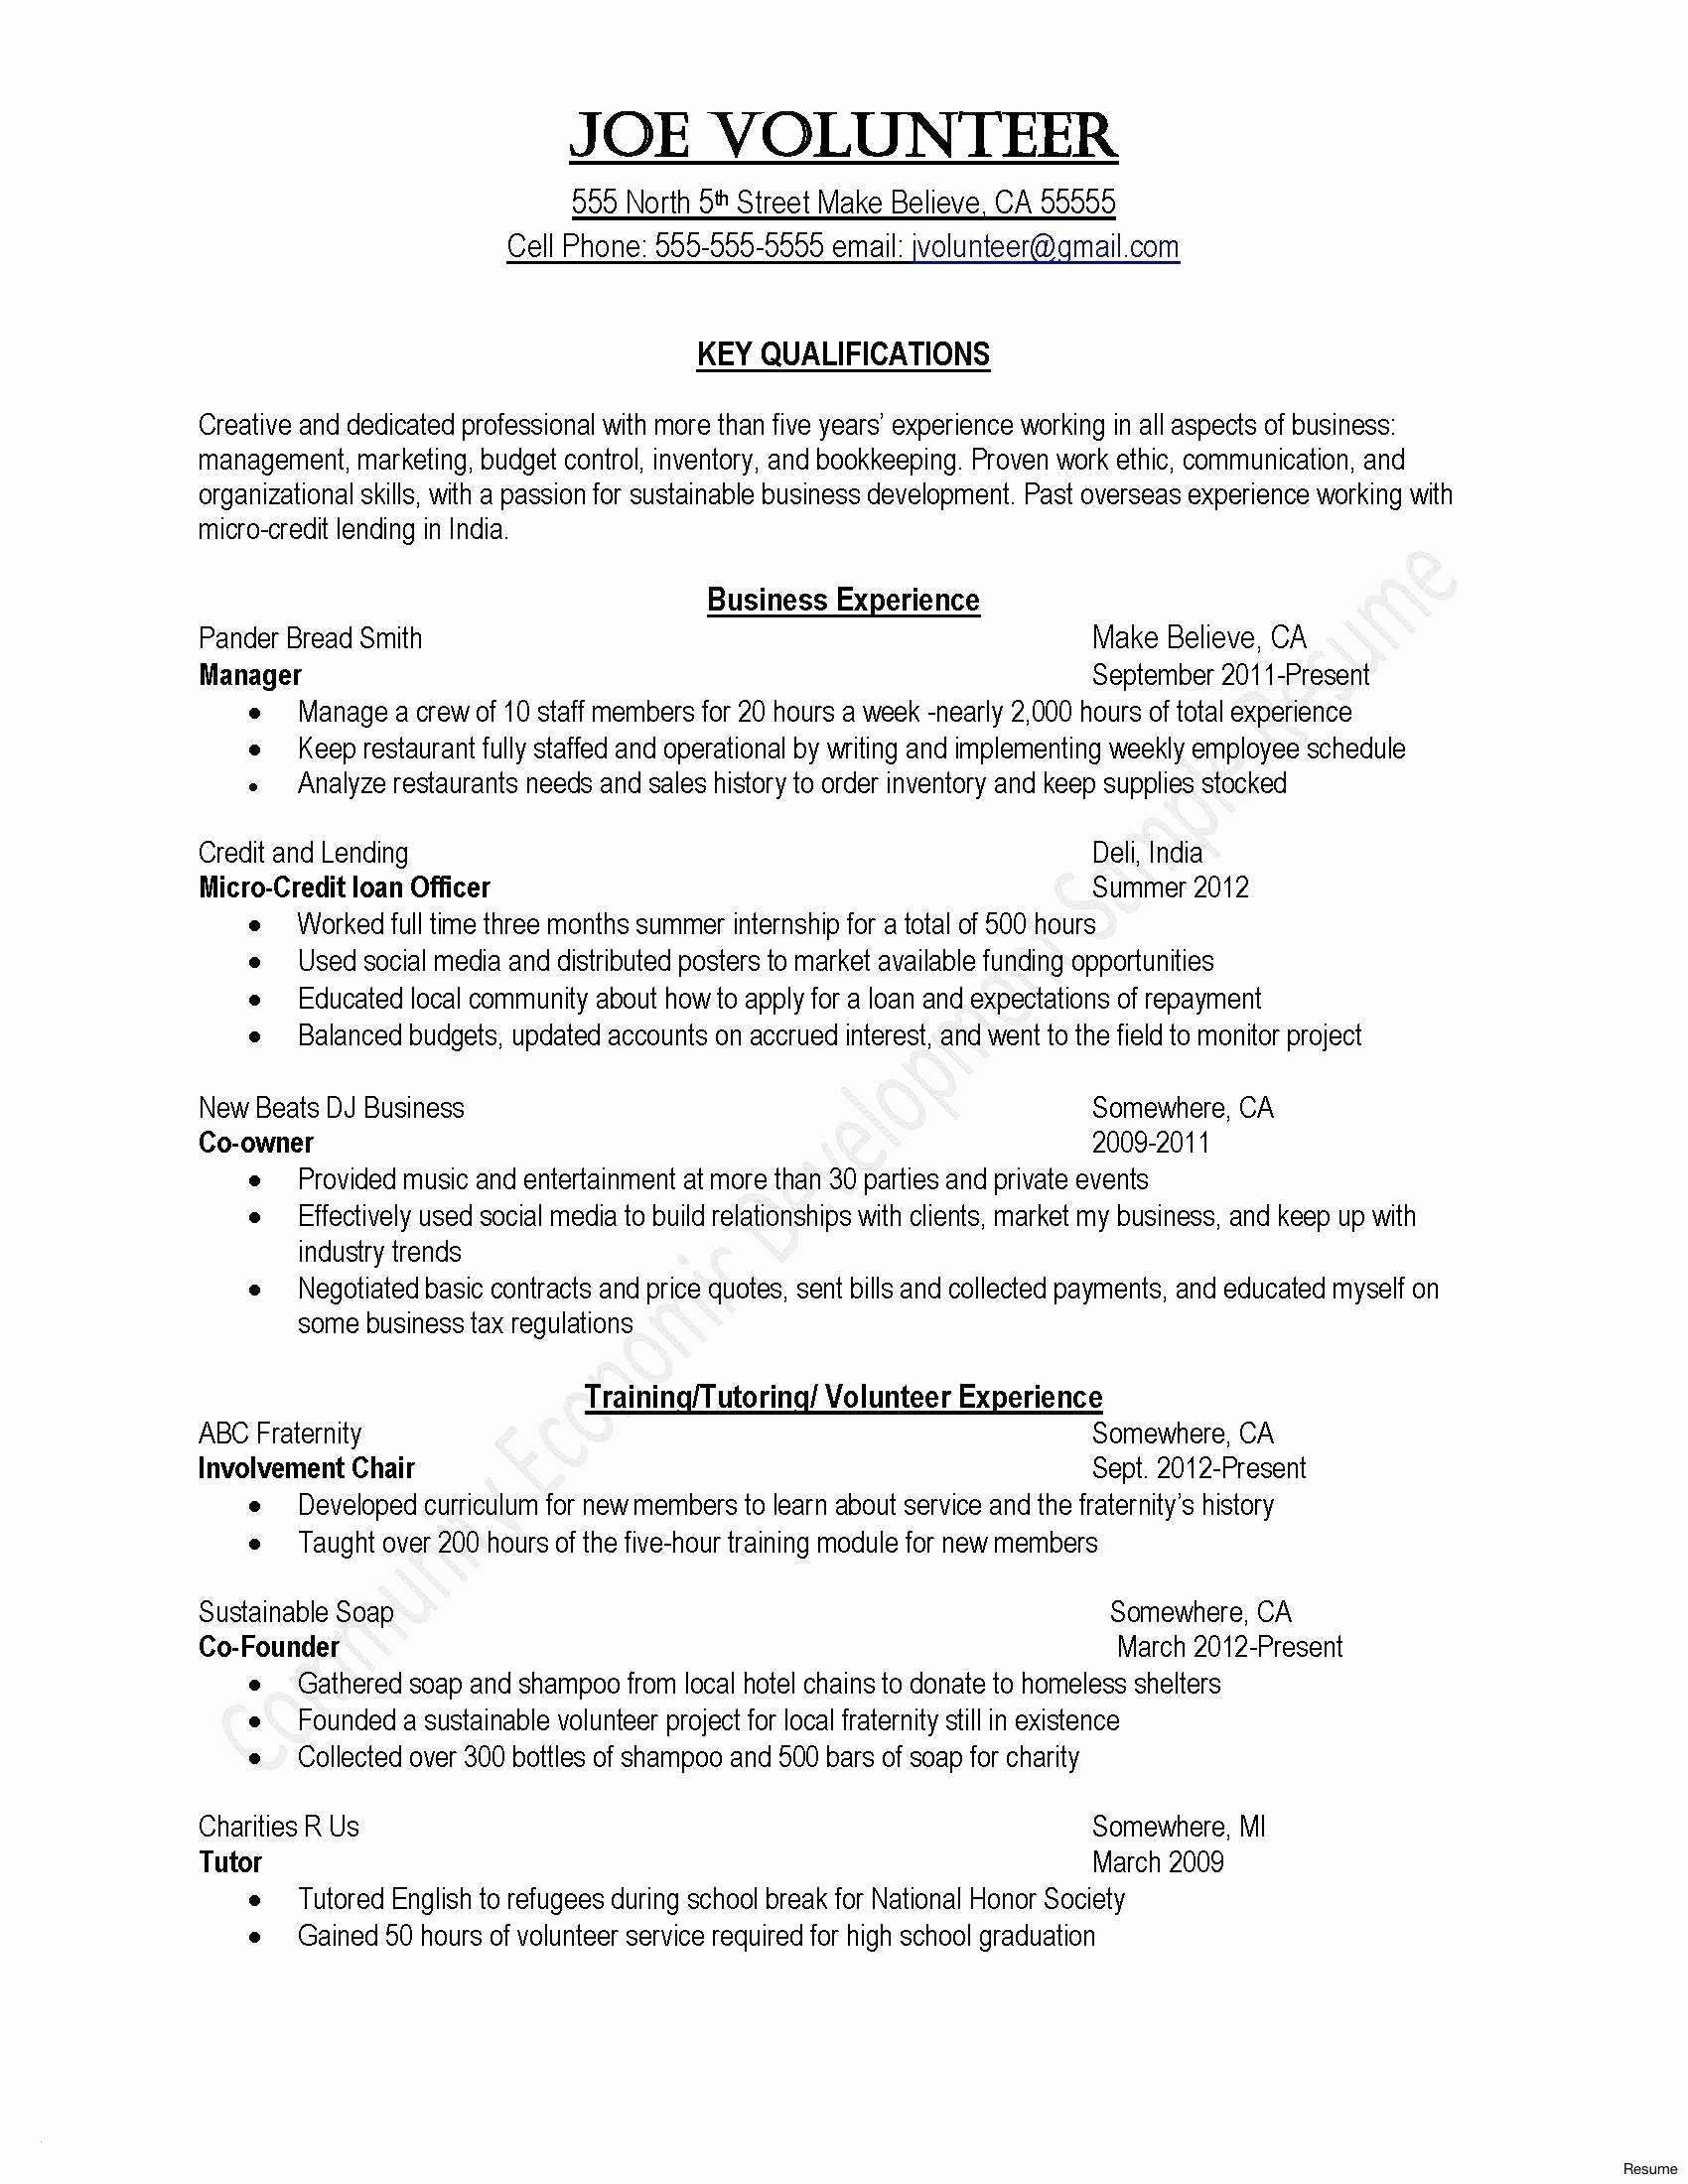 updated resume 2018 Collection-Personal assistant Resume Sample Inspirational Elegant Resume Puter Skills Examples Fresh Od Specialist Sample 5-j